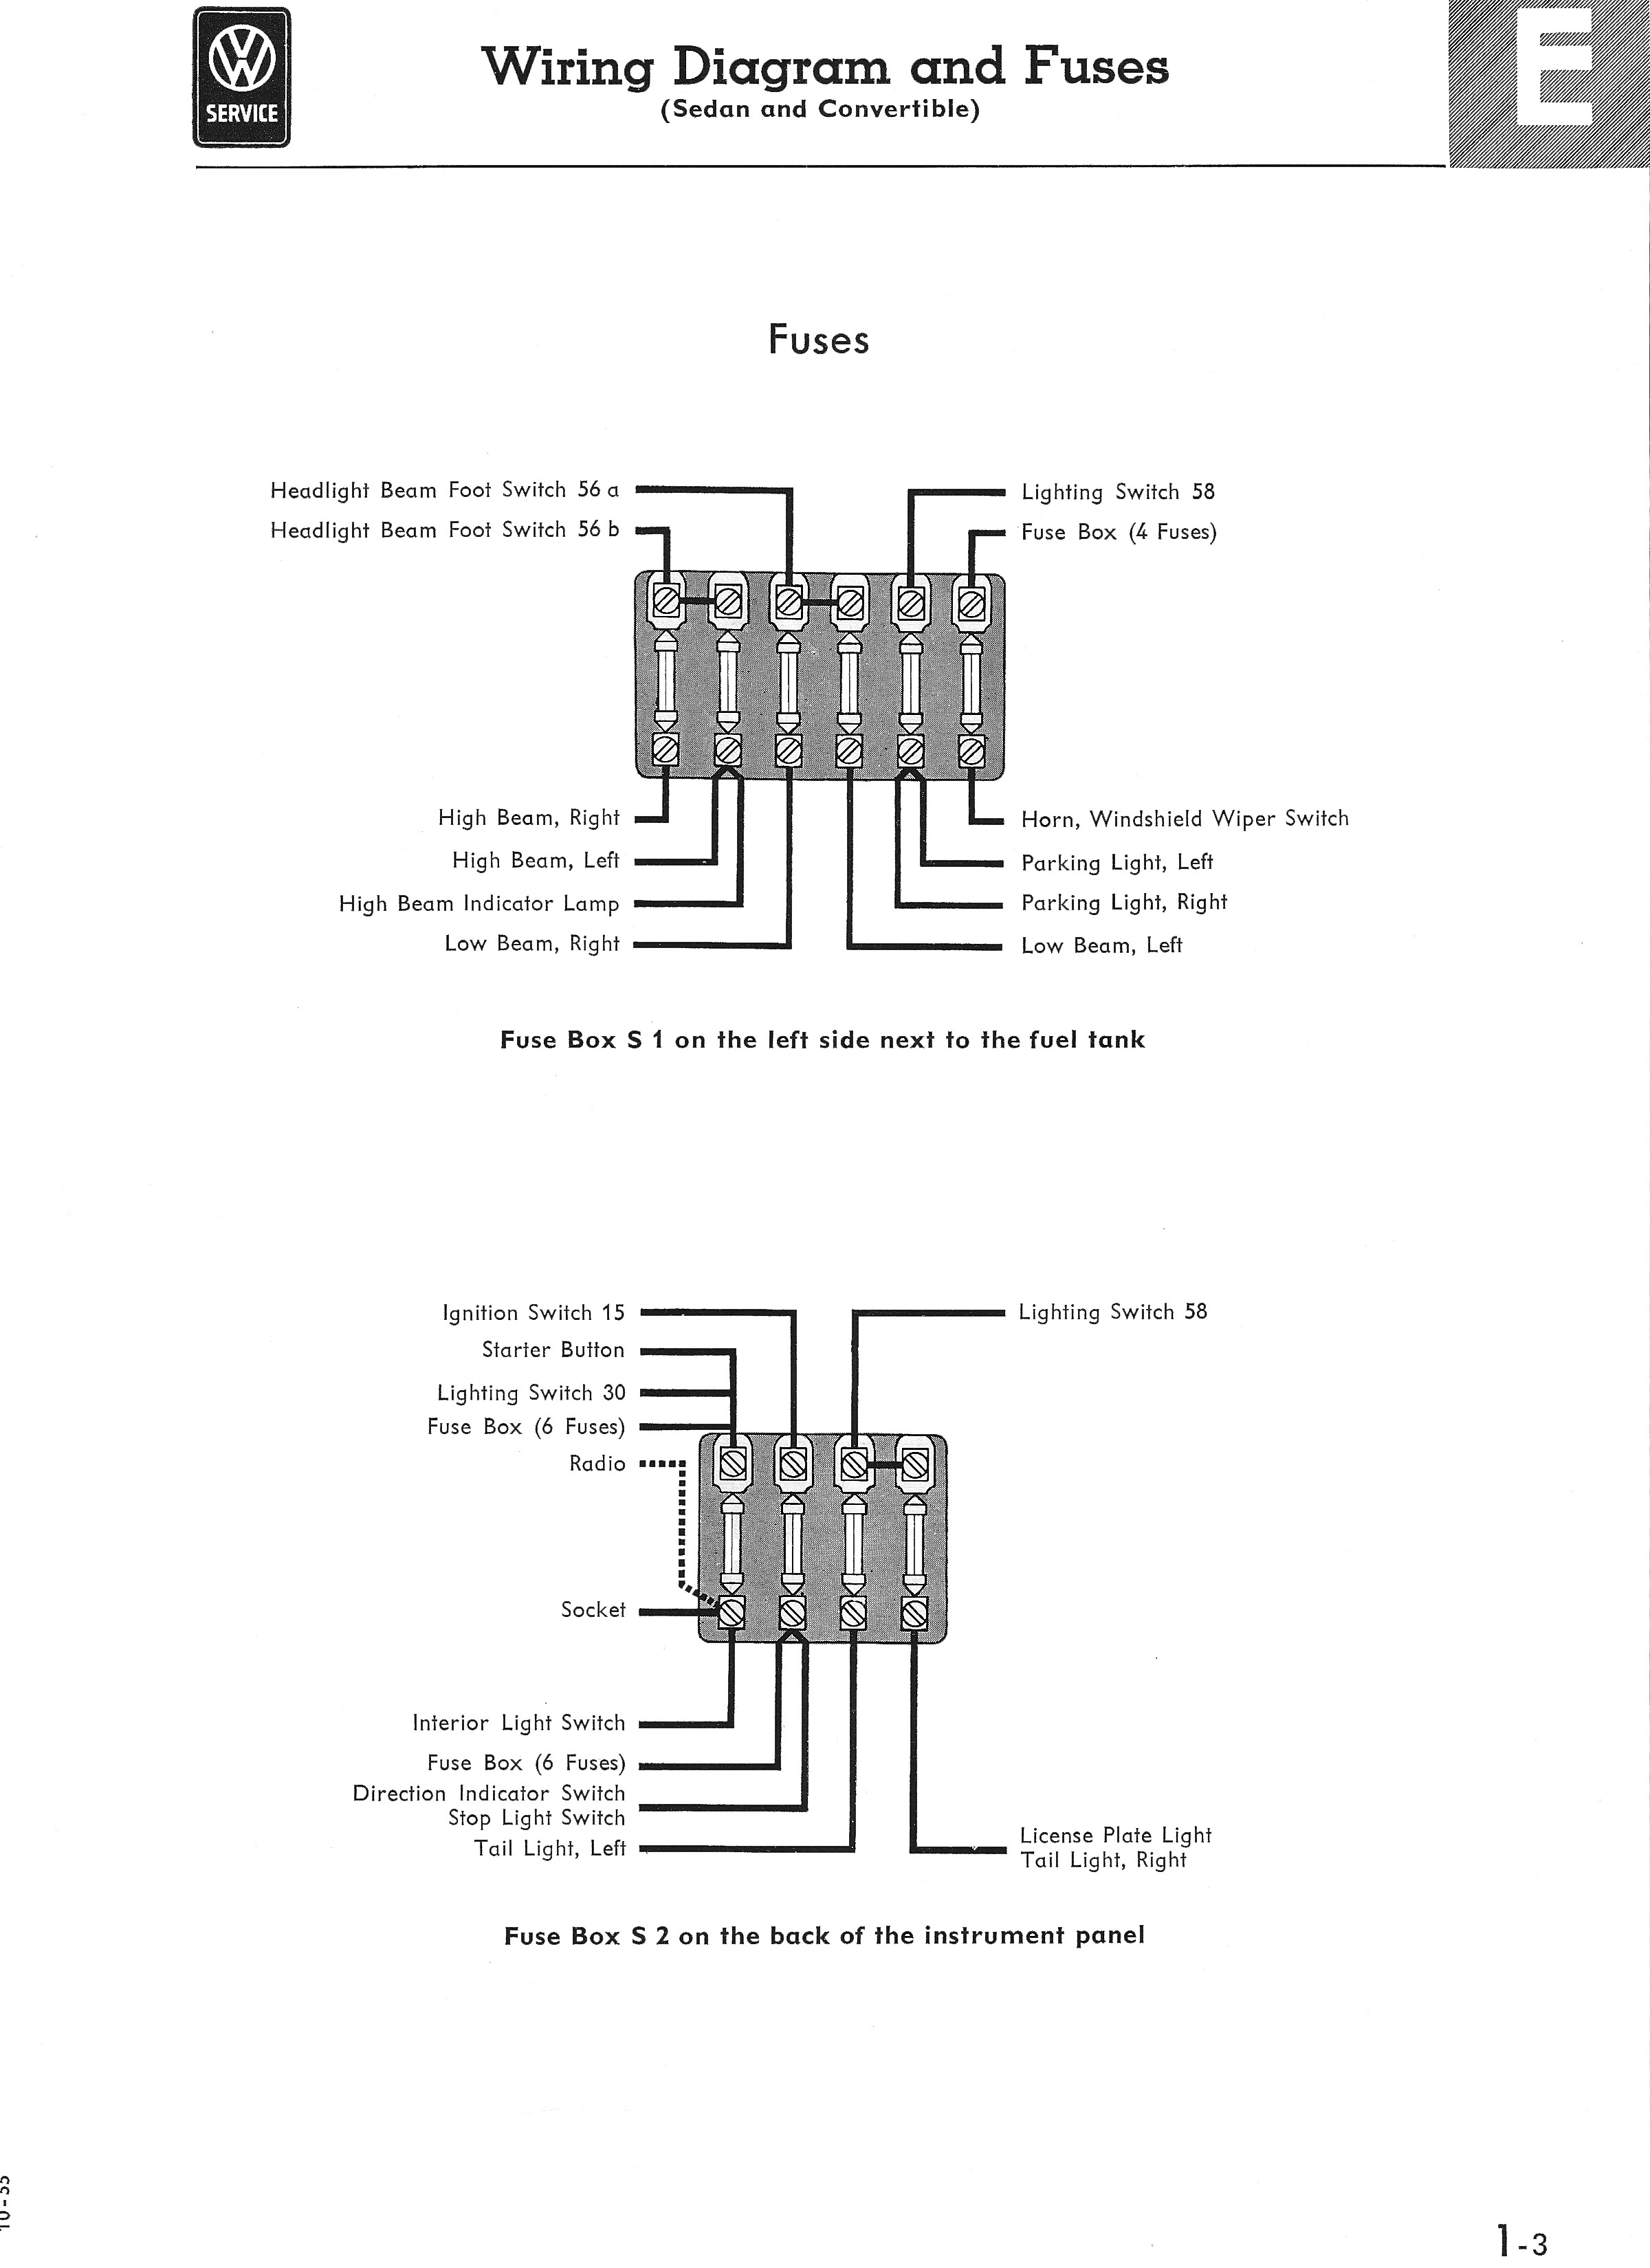 bug_5253_fuses_300dpi fuse wiring diagram pdp 1b fuse panel wiring diagram \u2022 free wiring  at gsmportal.co